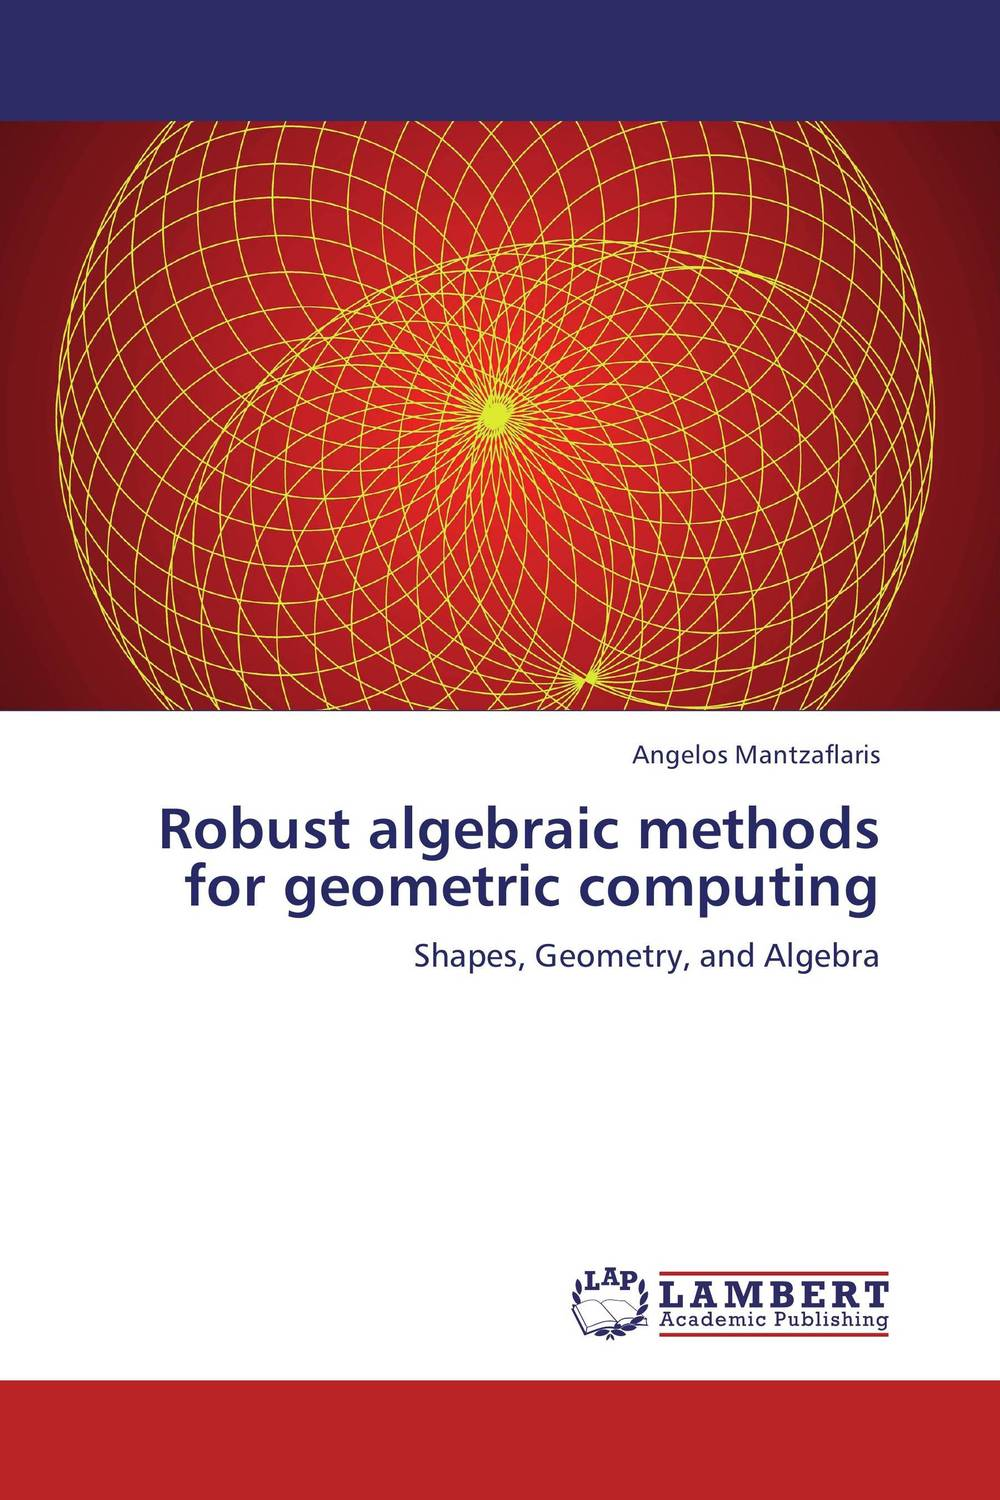 Robust algebraic methods for geometric computing